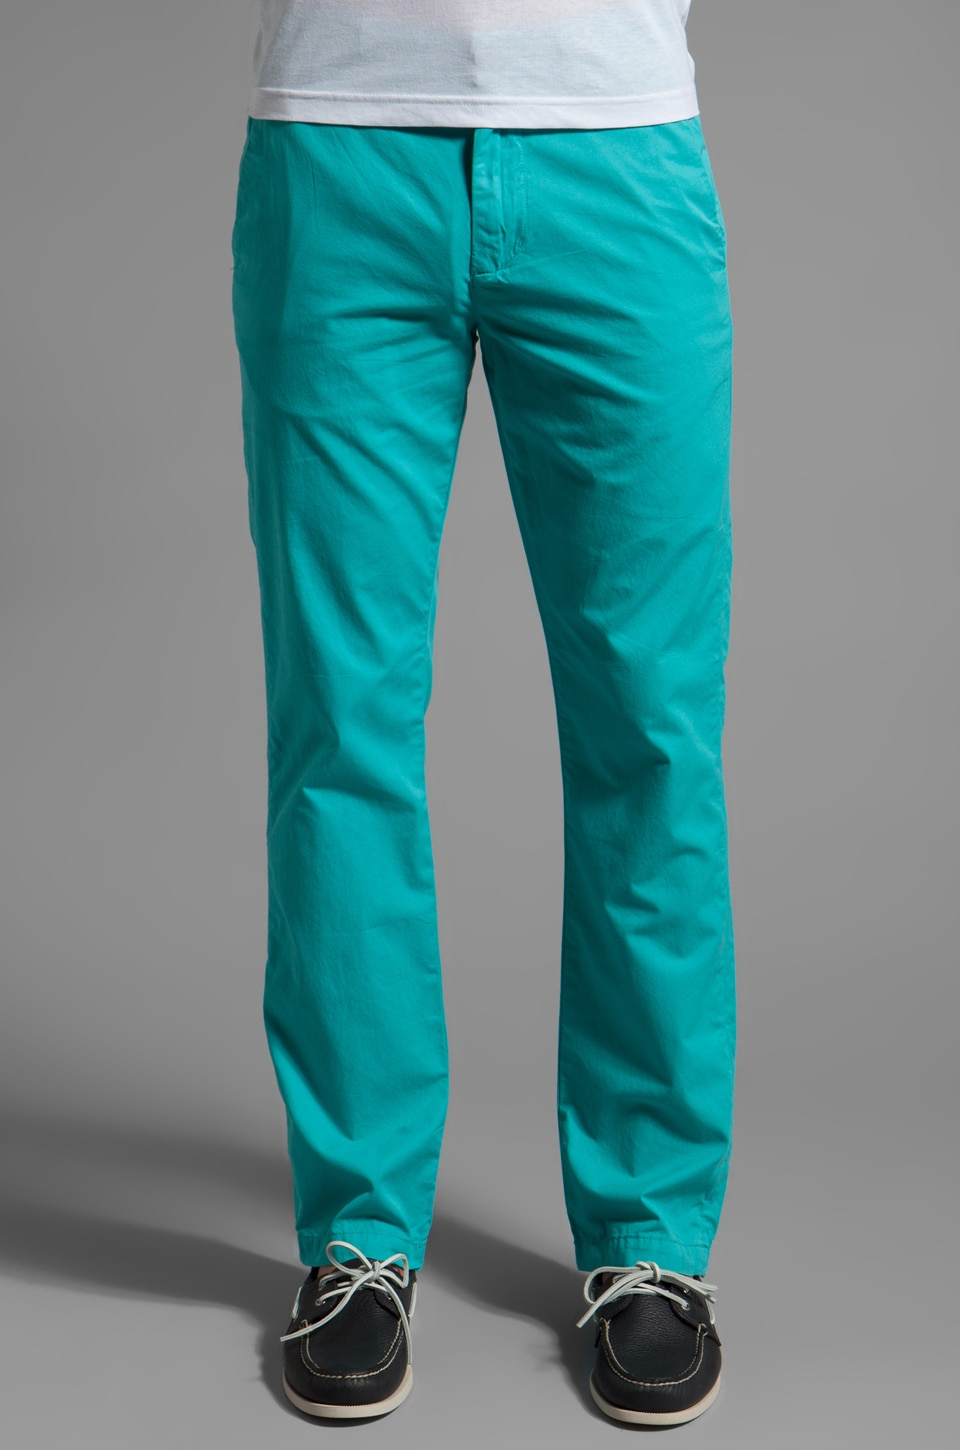 life/after/denim Slim Fit Chino in Blue Curacao